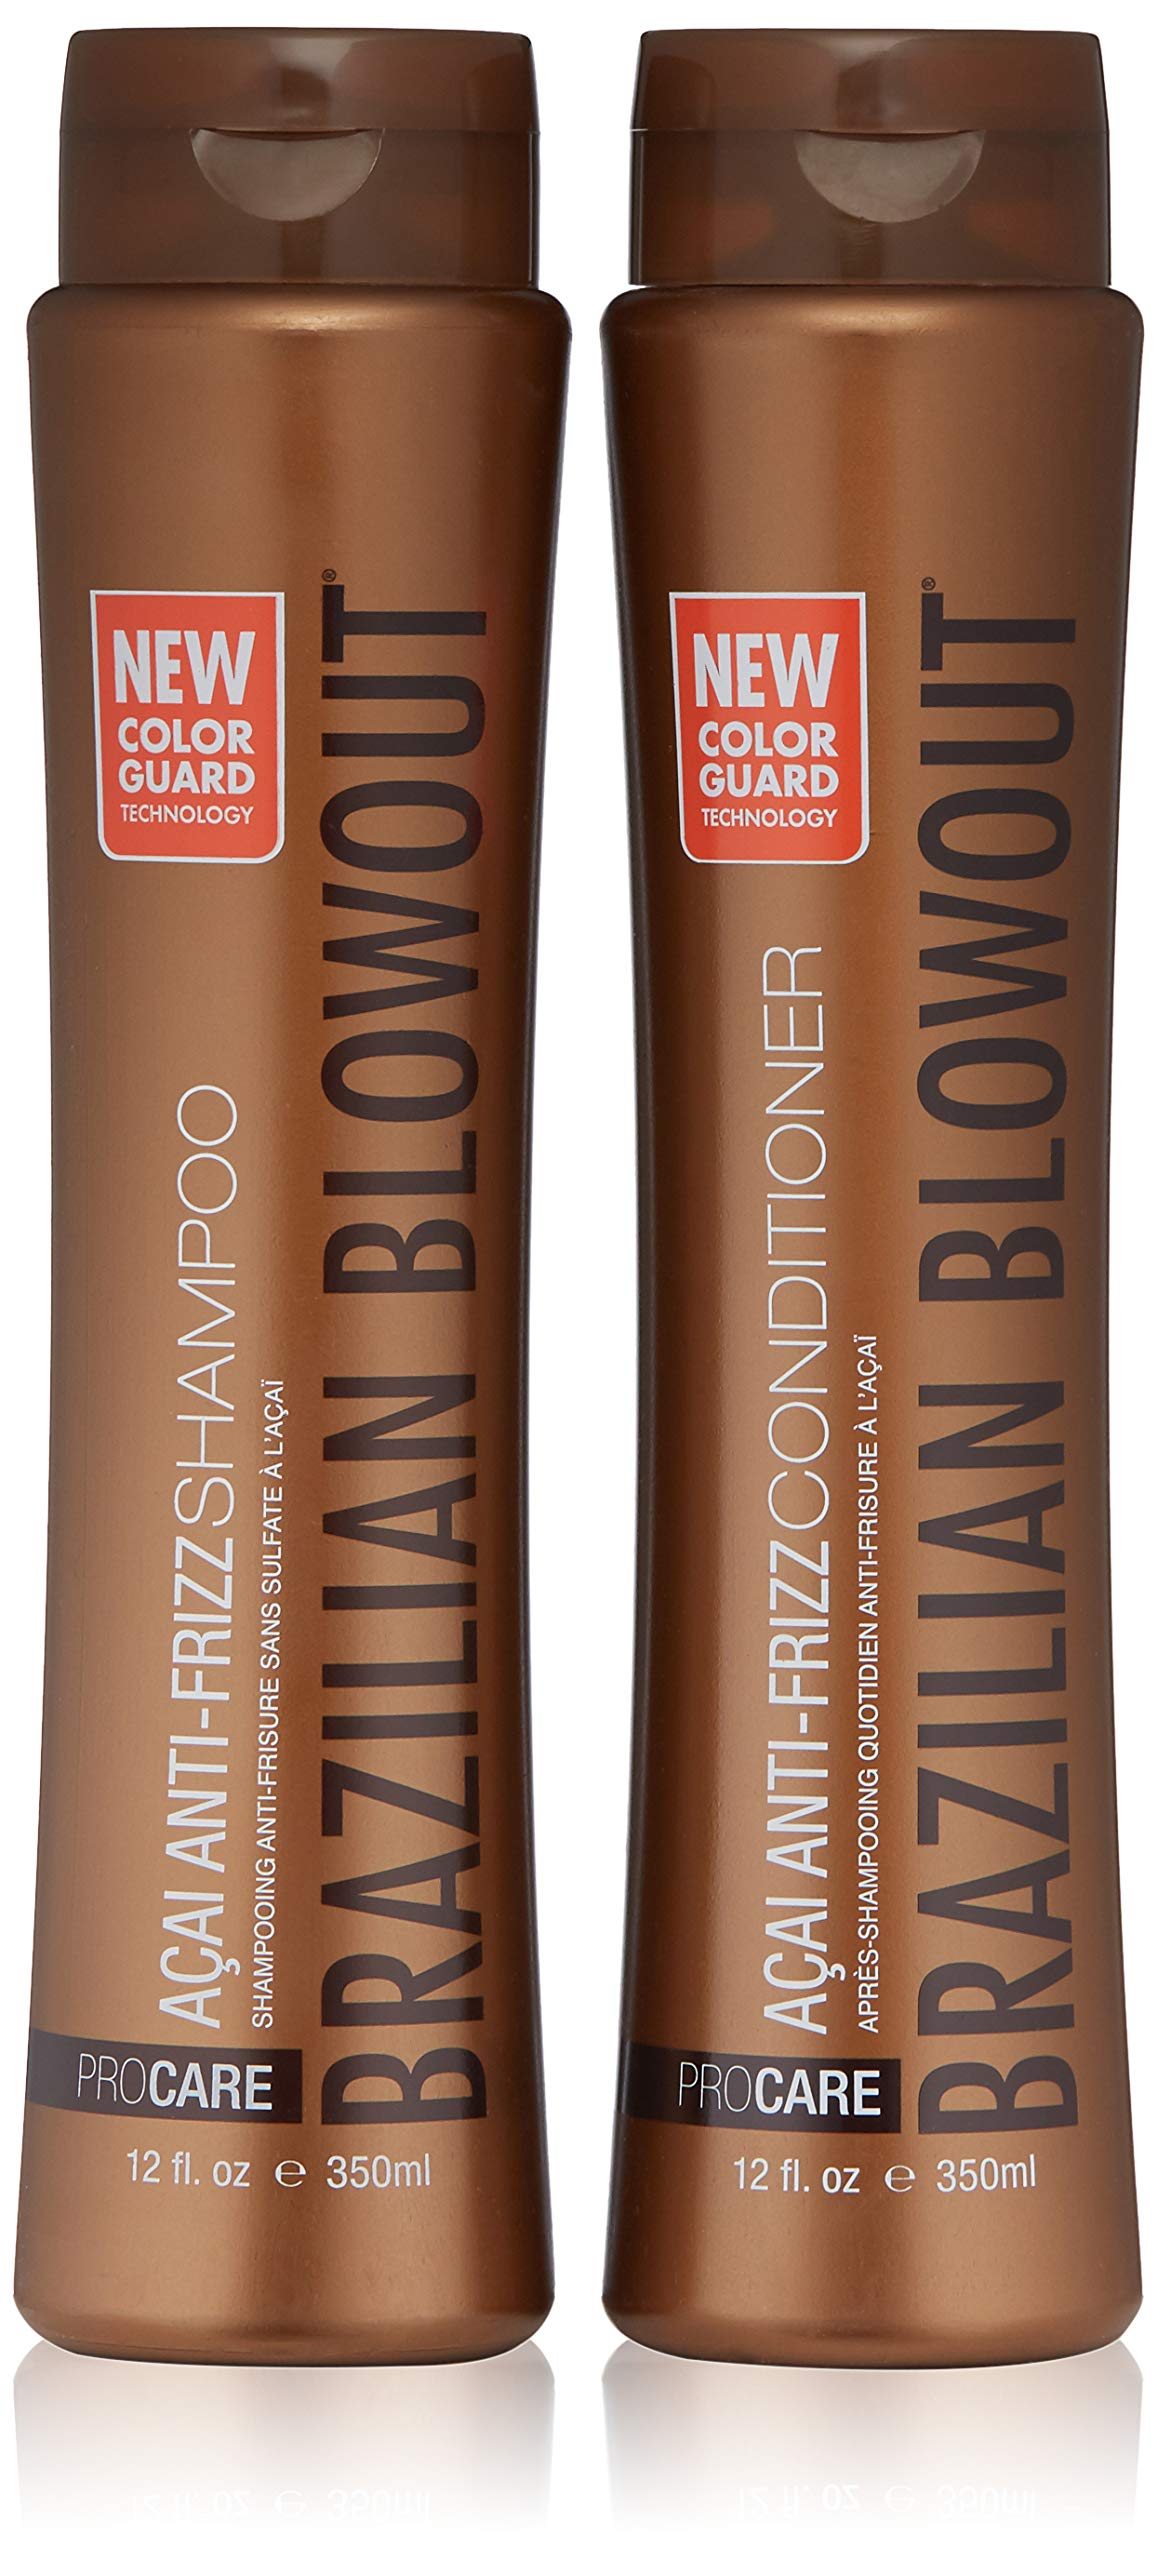 Brazilian Blowout Shampoo and Conditioner, 12 Fl Oz, Pack of 2 by BRAZILIAN BLOWOUT